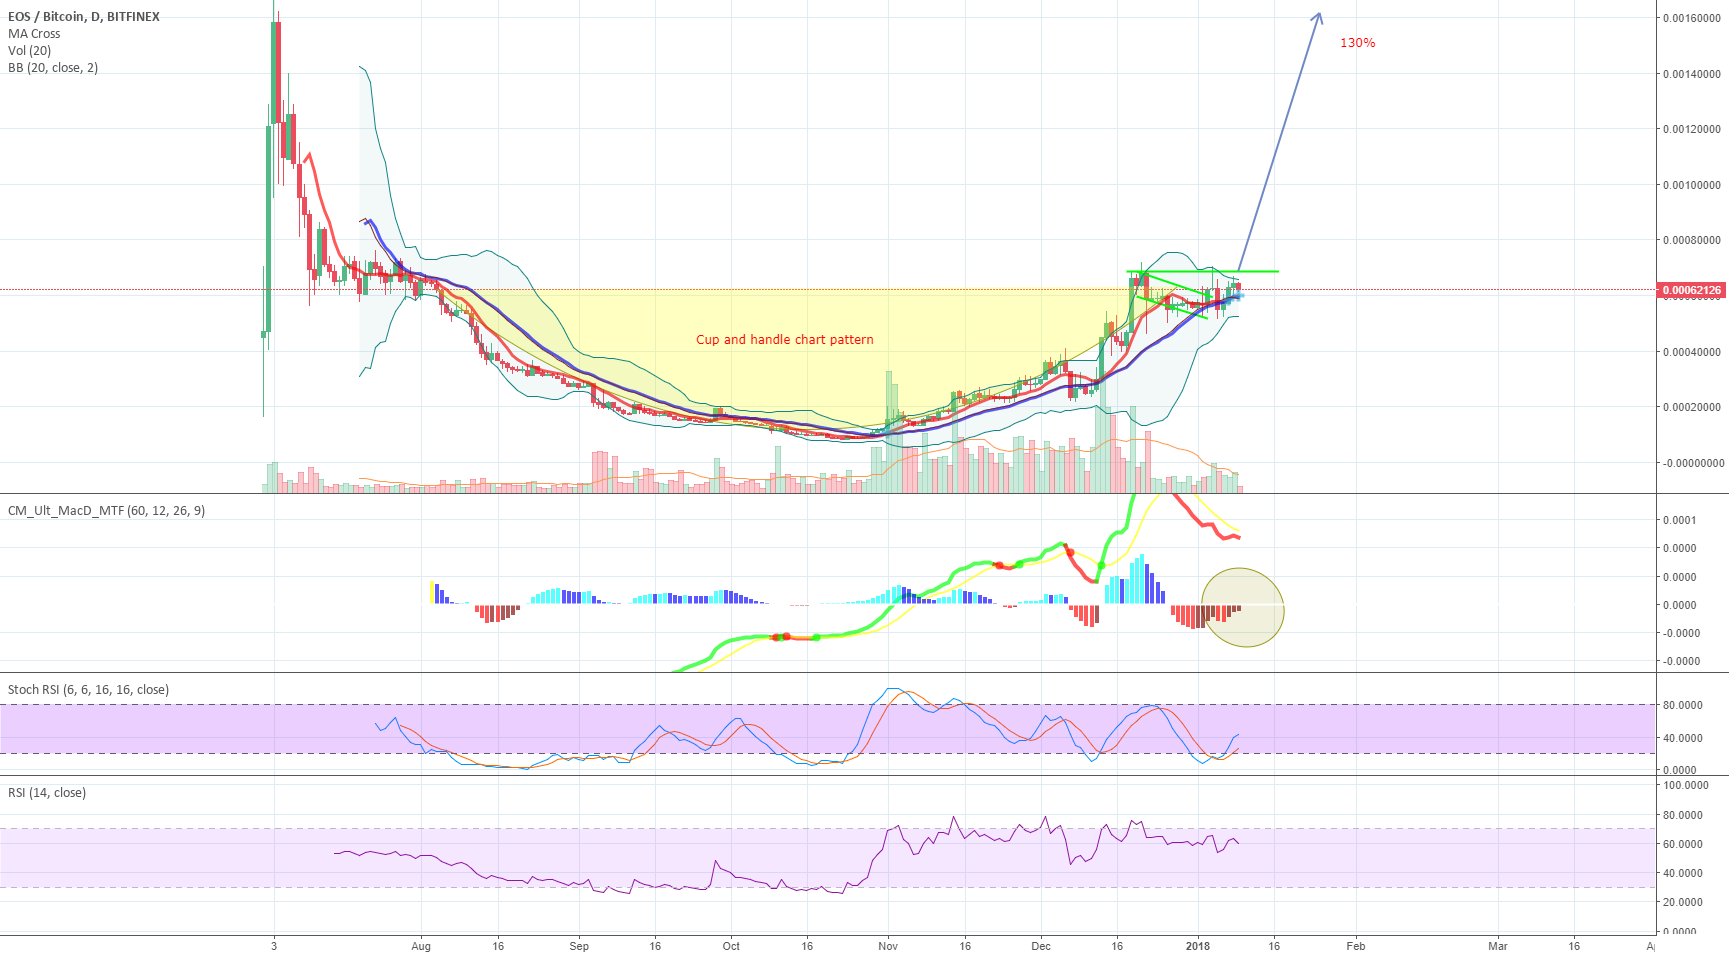 EOS NICE Cup and handle chart pattern